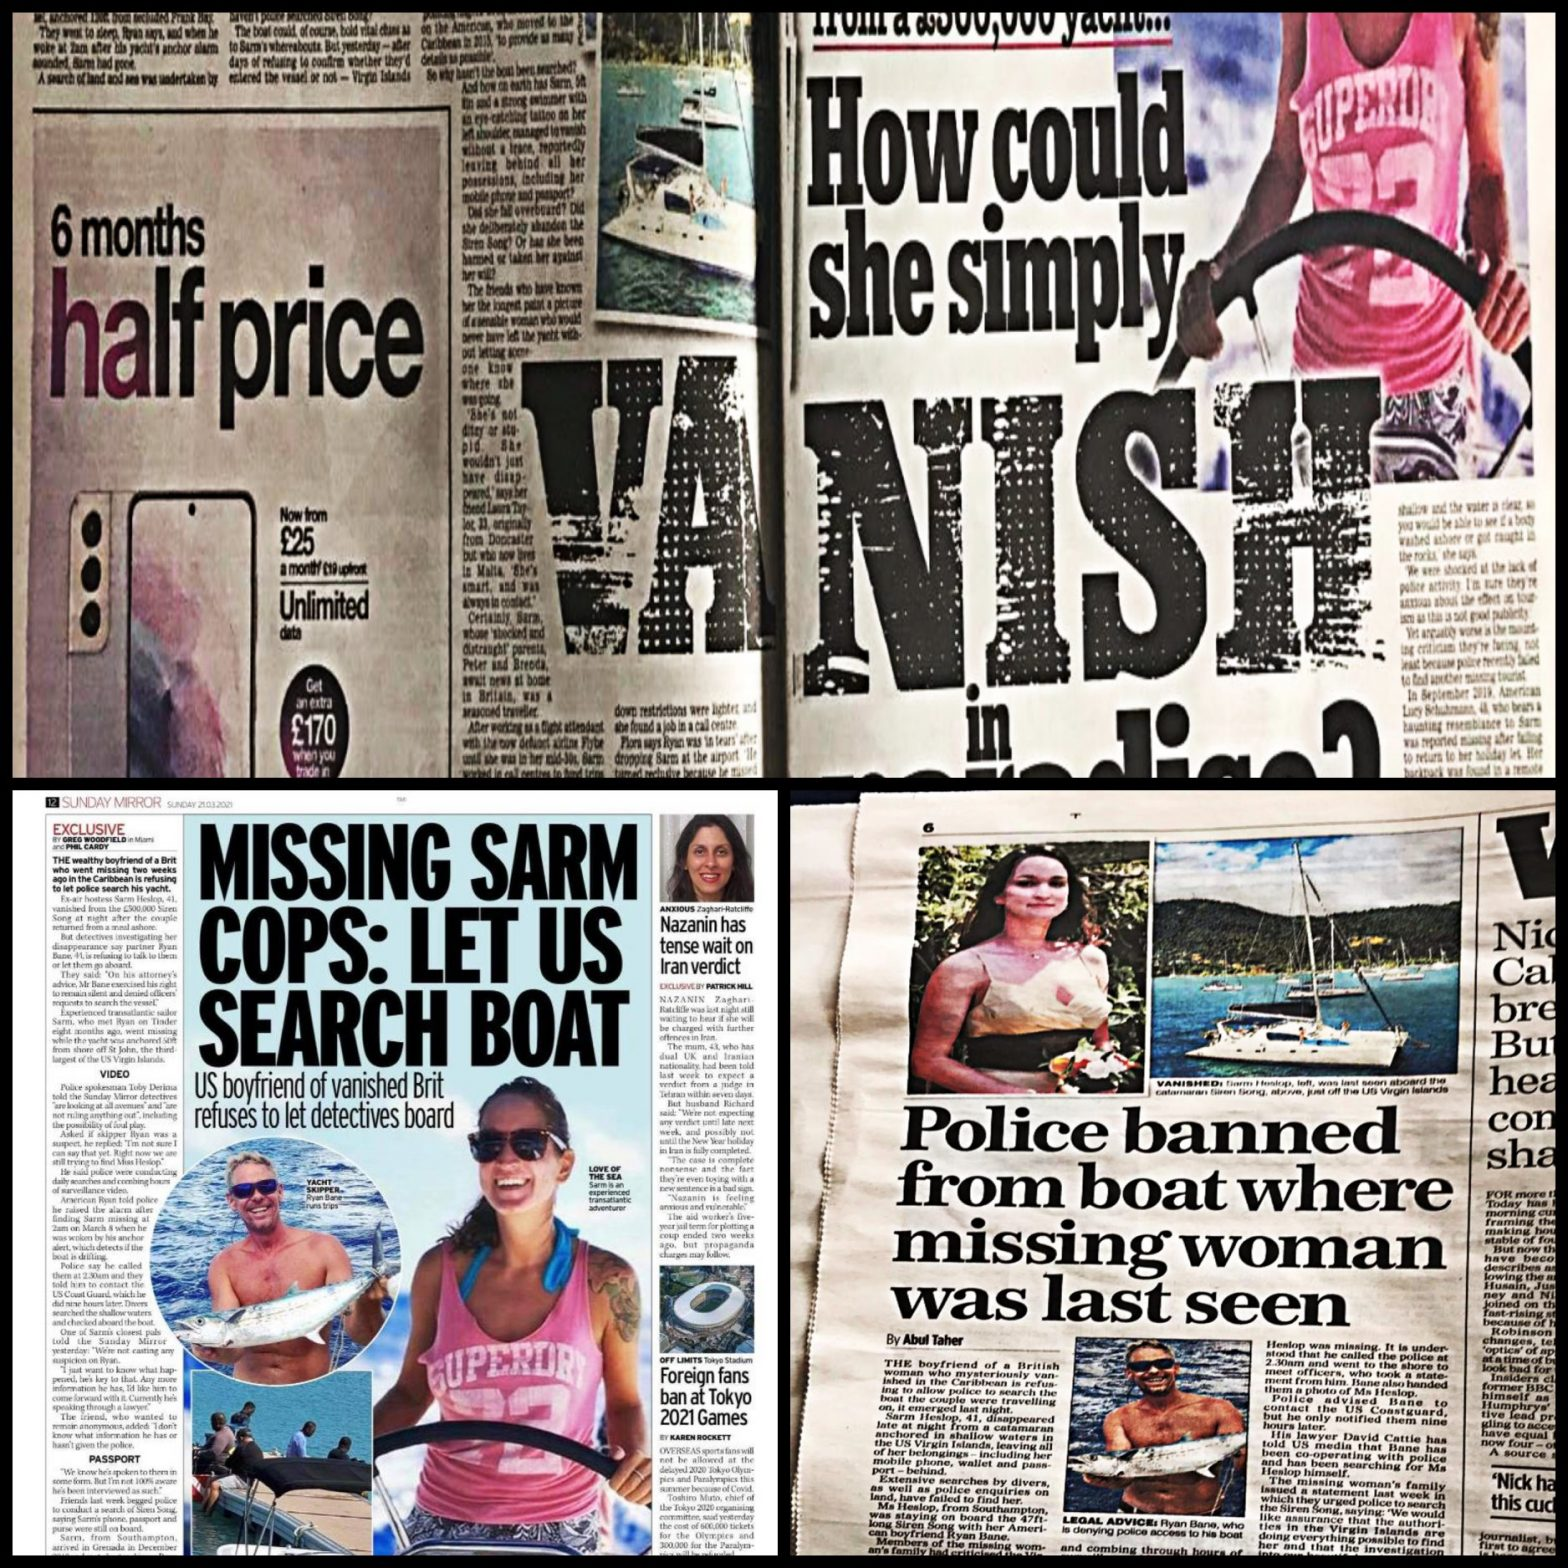 Missing Sarm Cops Let Us Search Boat